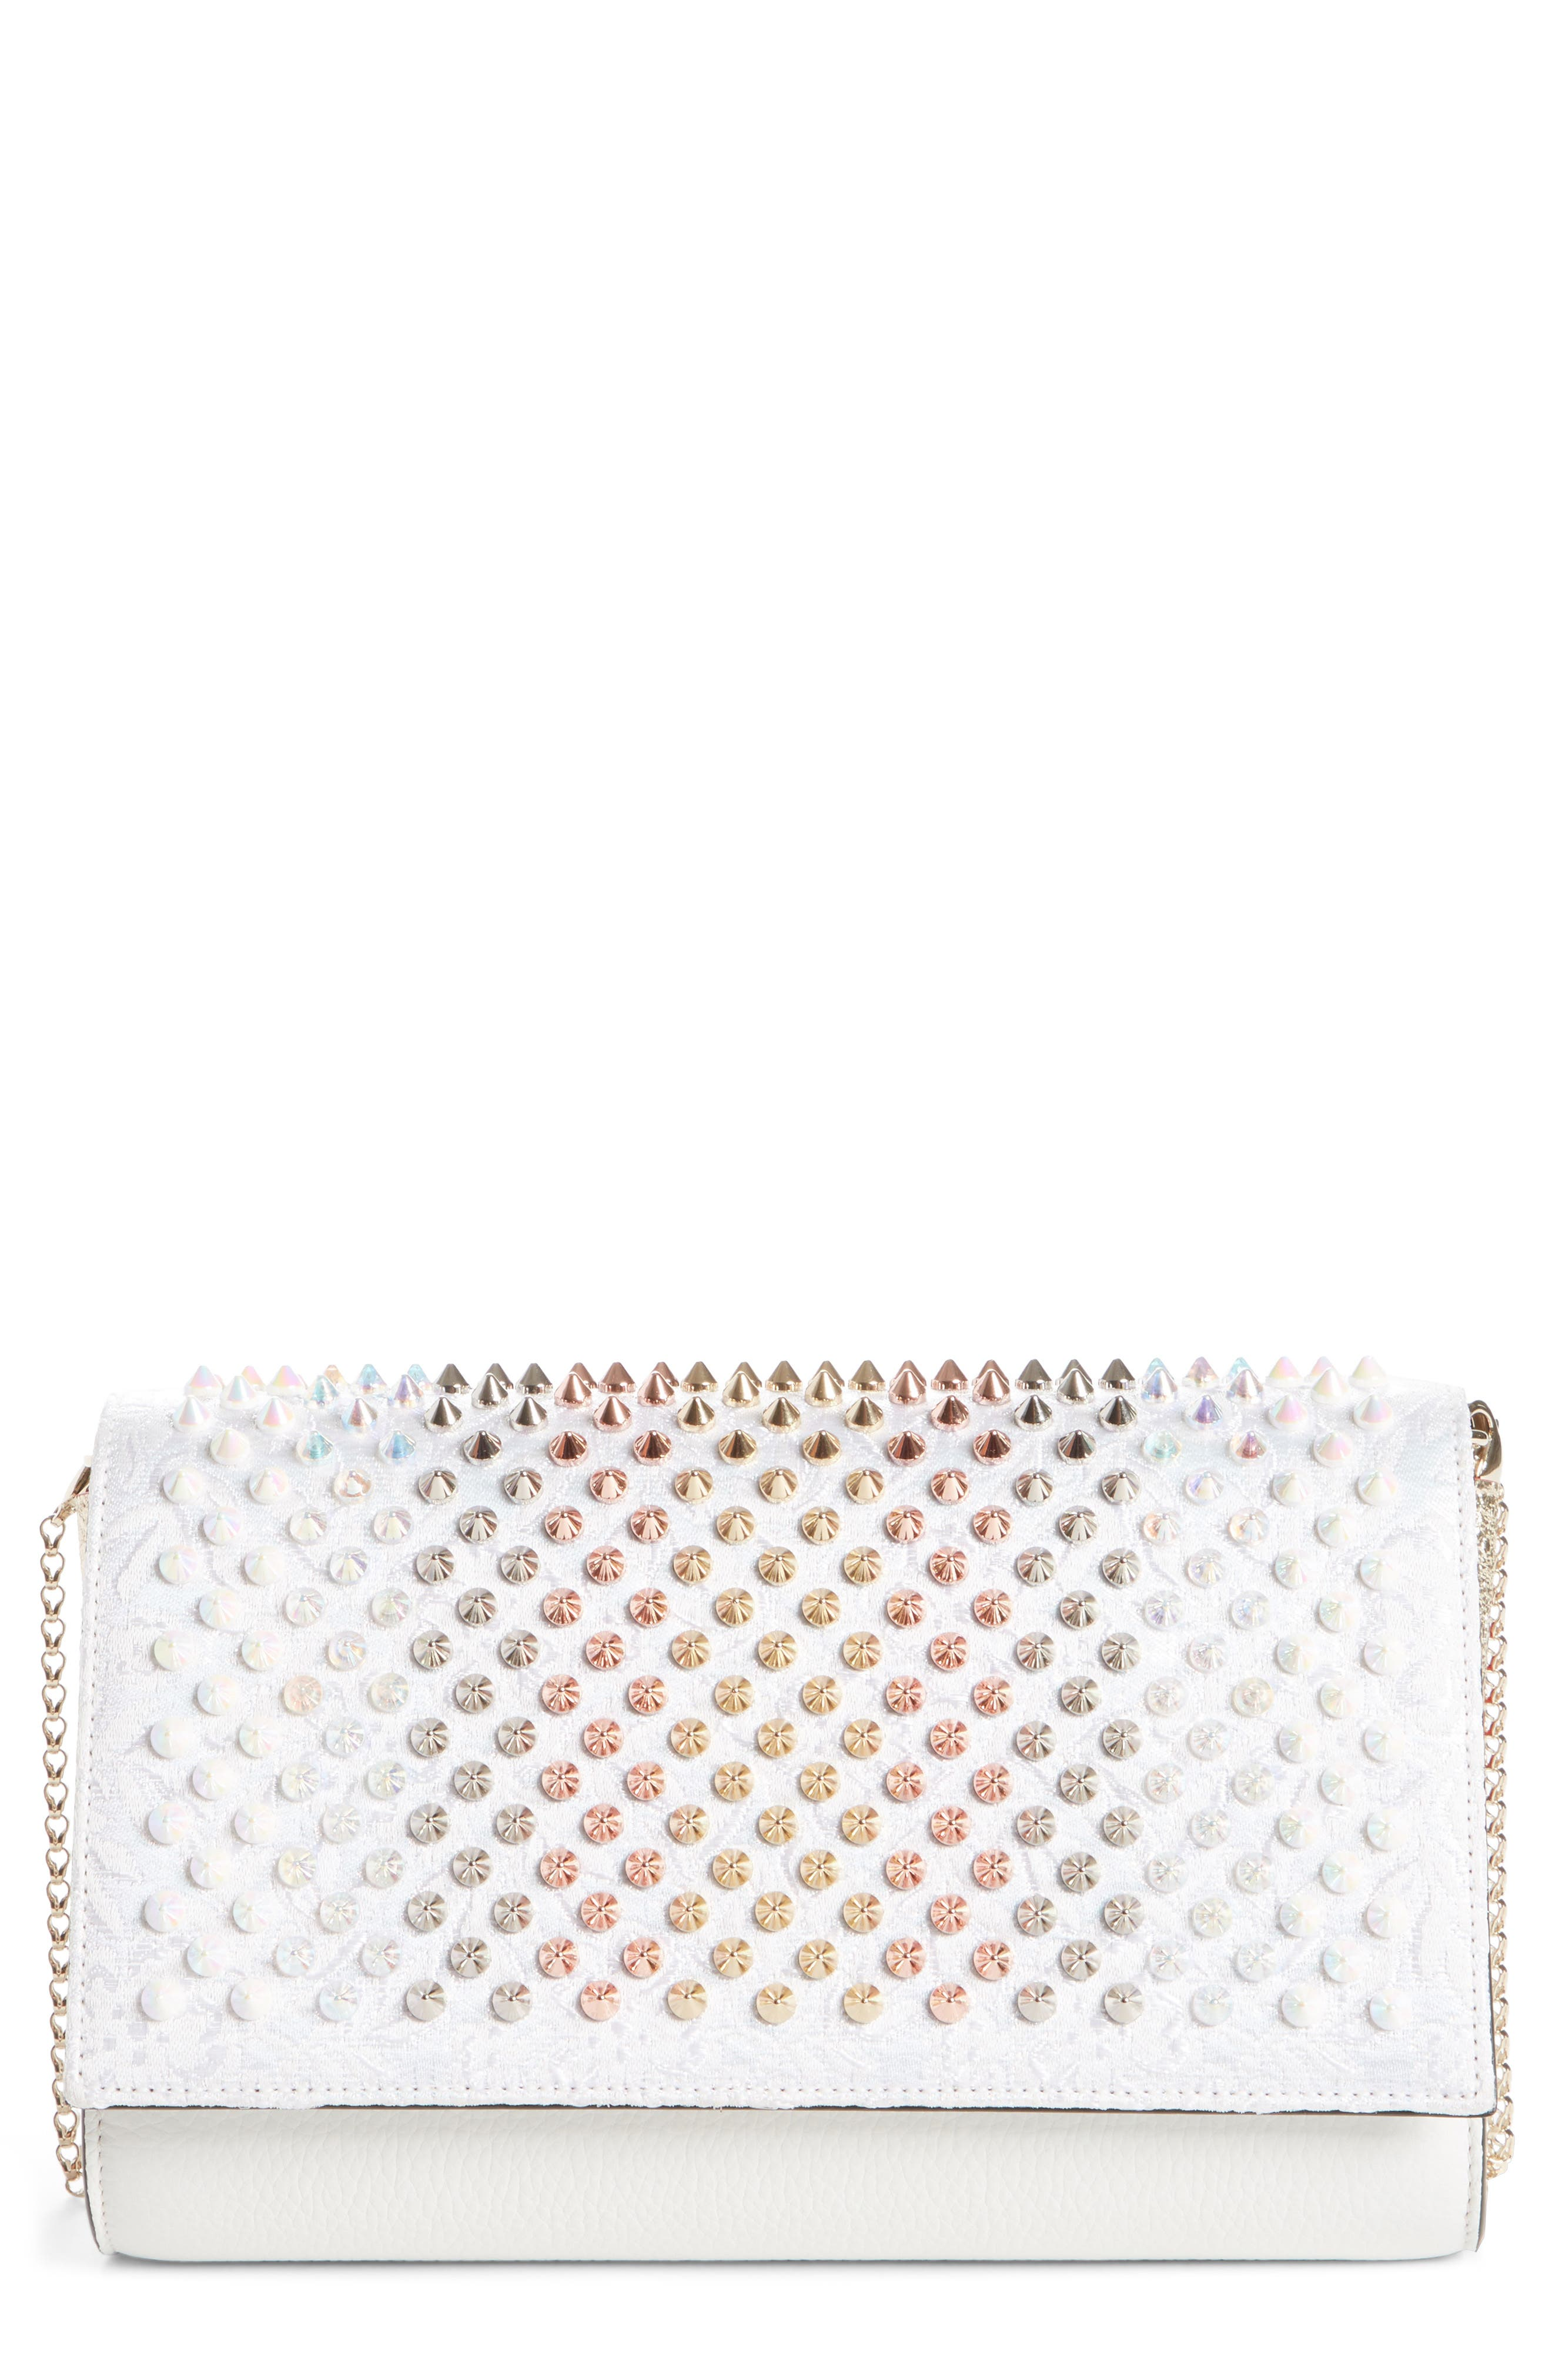 Christian Louboutin Paloma Spiked Clutch